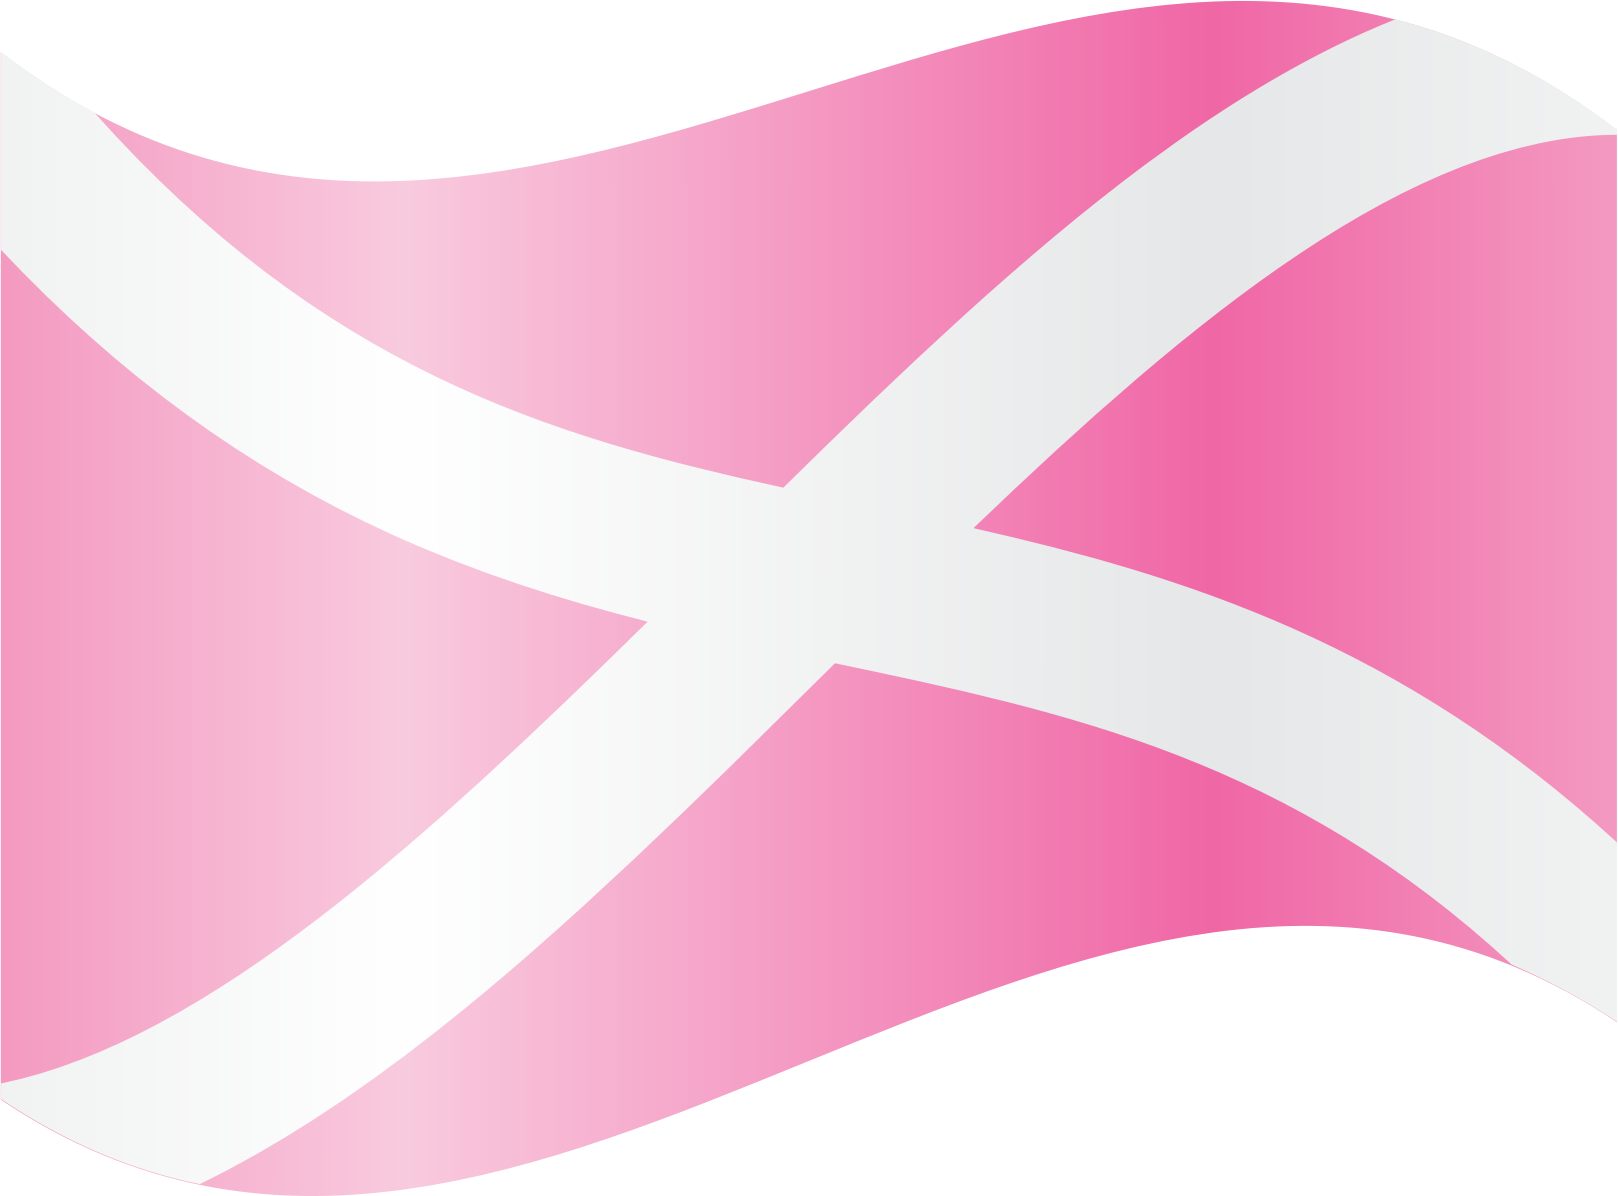 Waving Pink Saltire by feorag